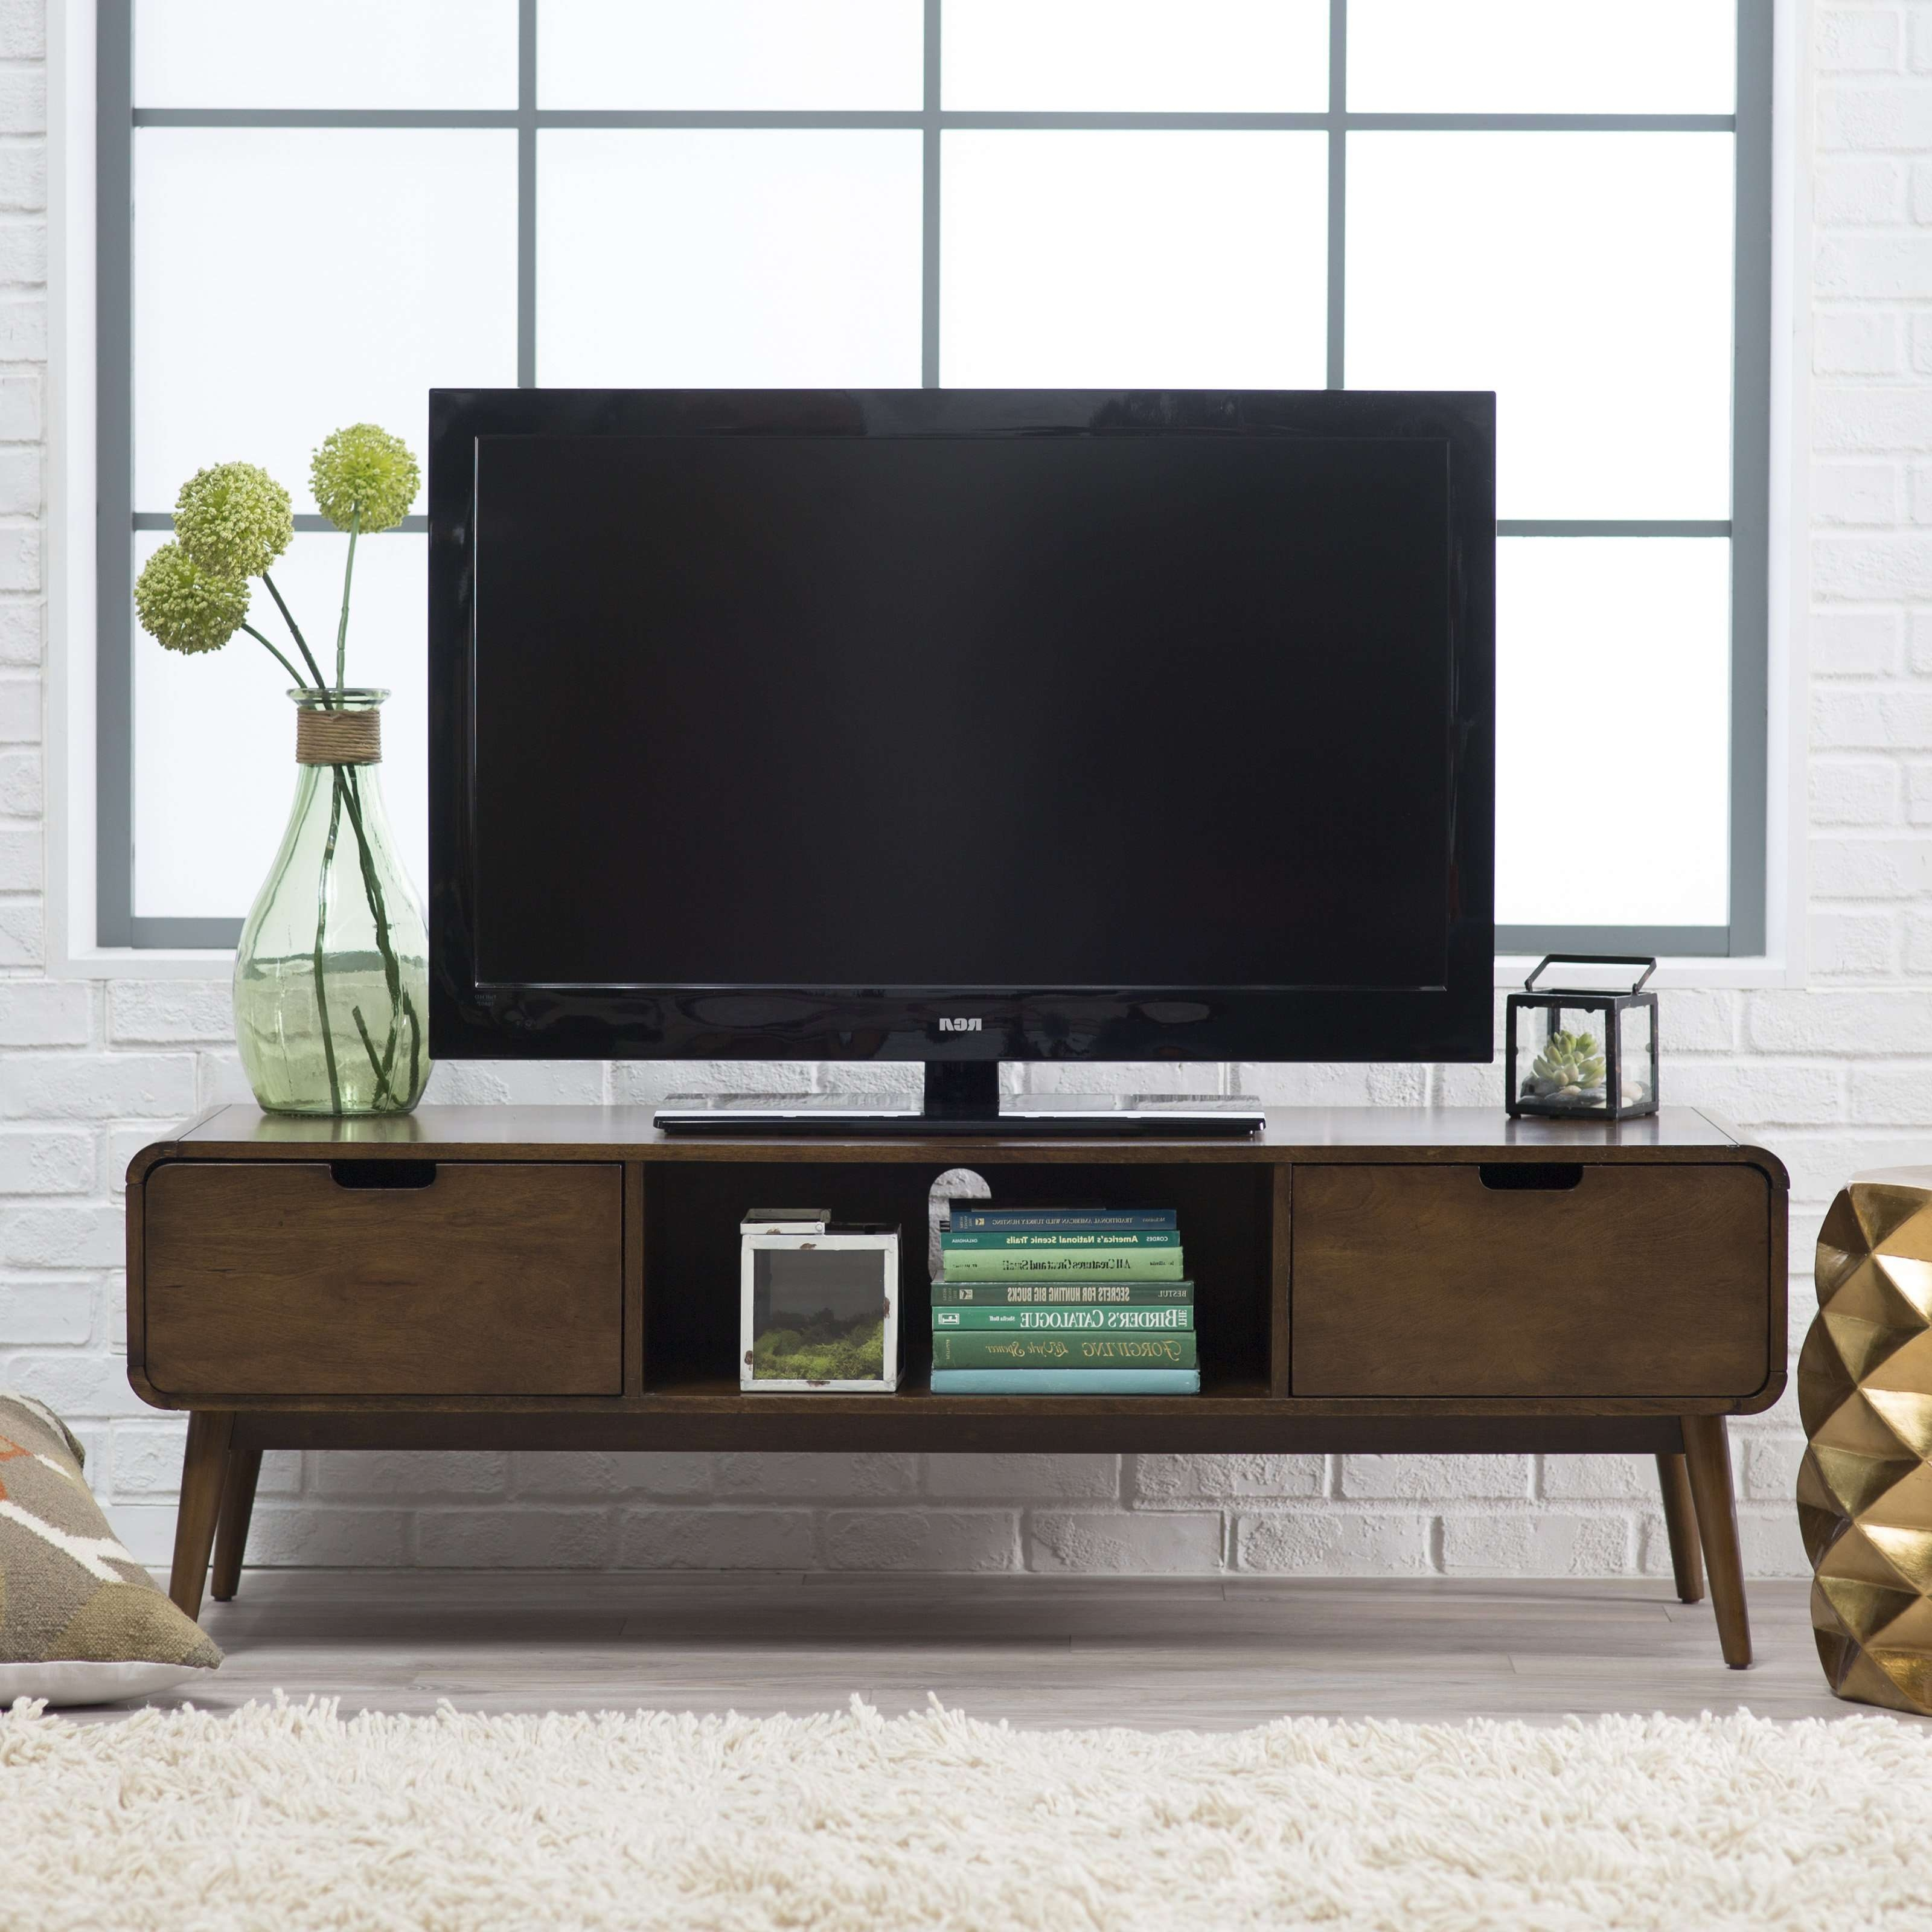 Belham Living Carter Mid Century Modern Tv Stand | Hayneedle Intended For Modern Low Profile Tv Stands (View 3 of 20)